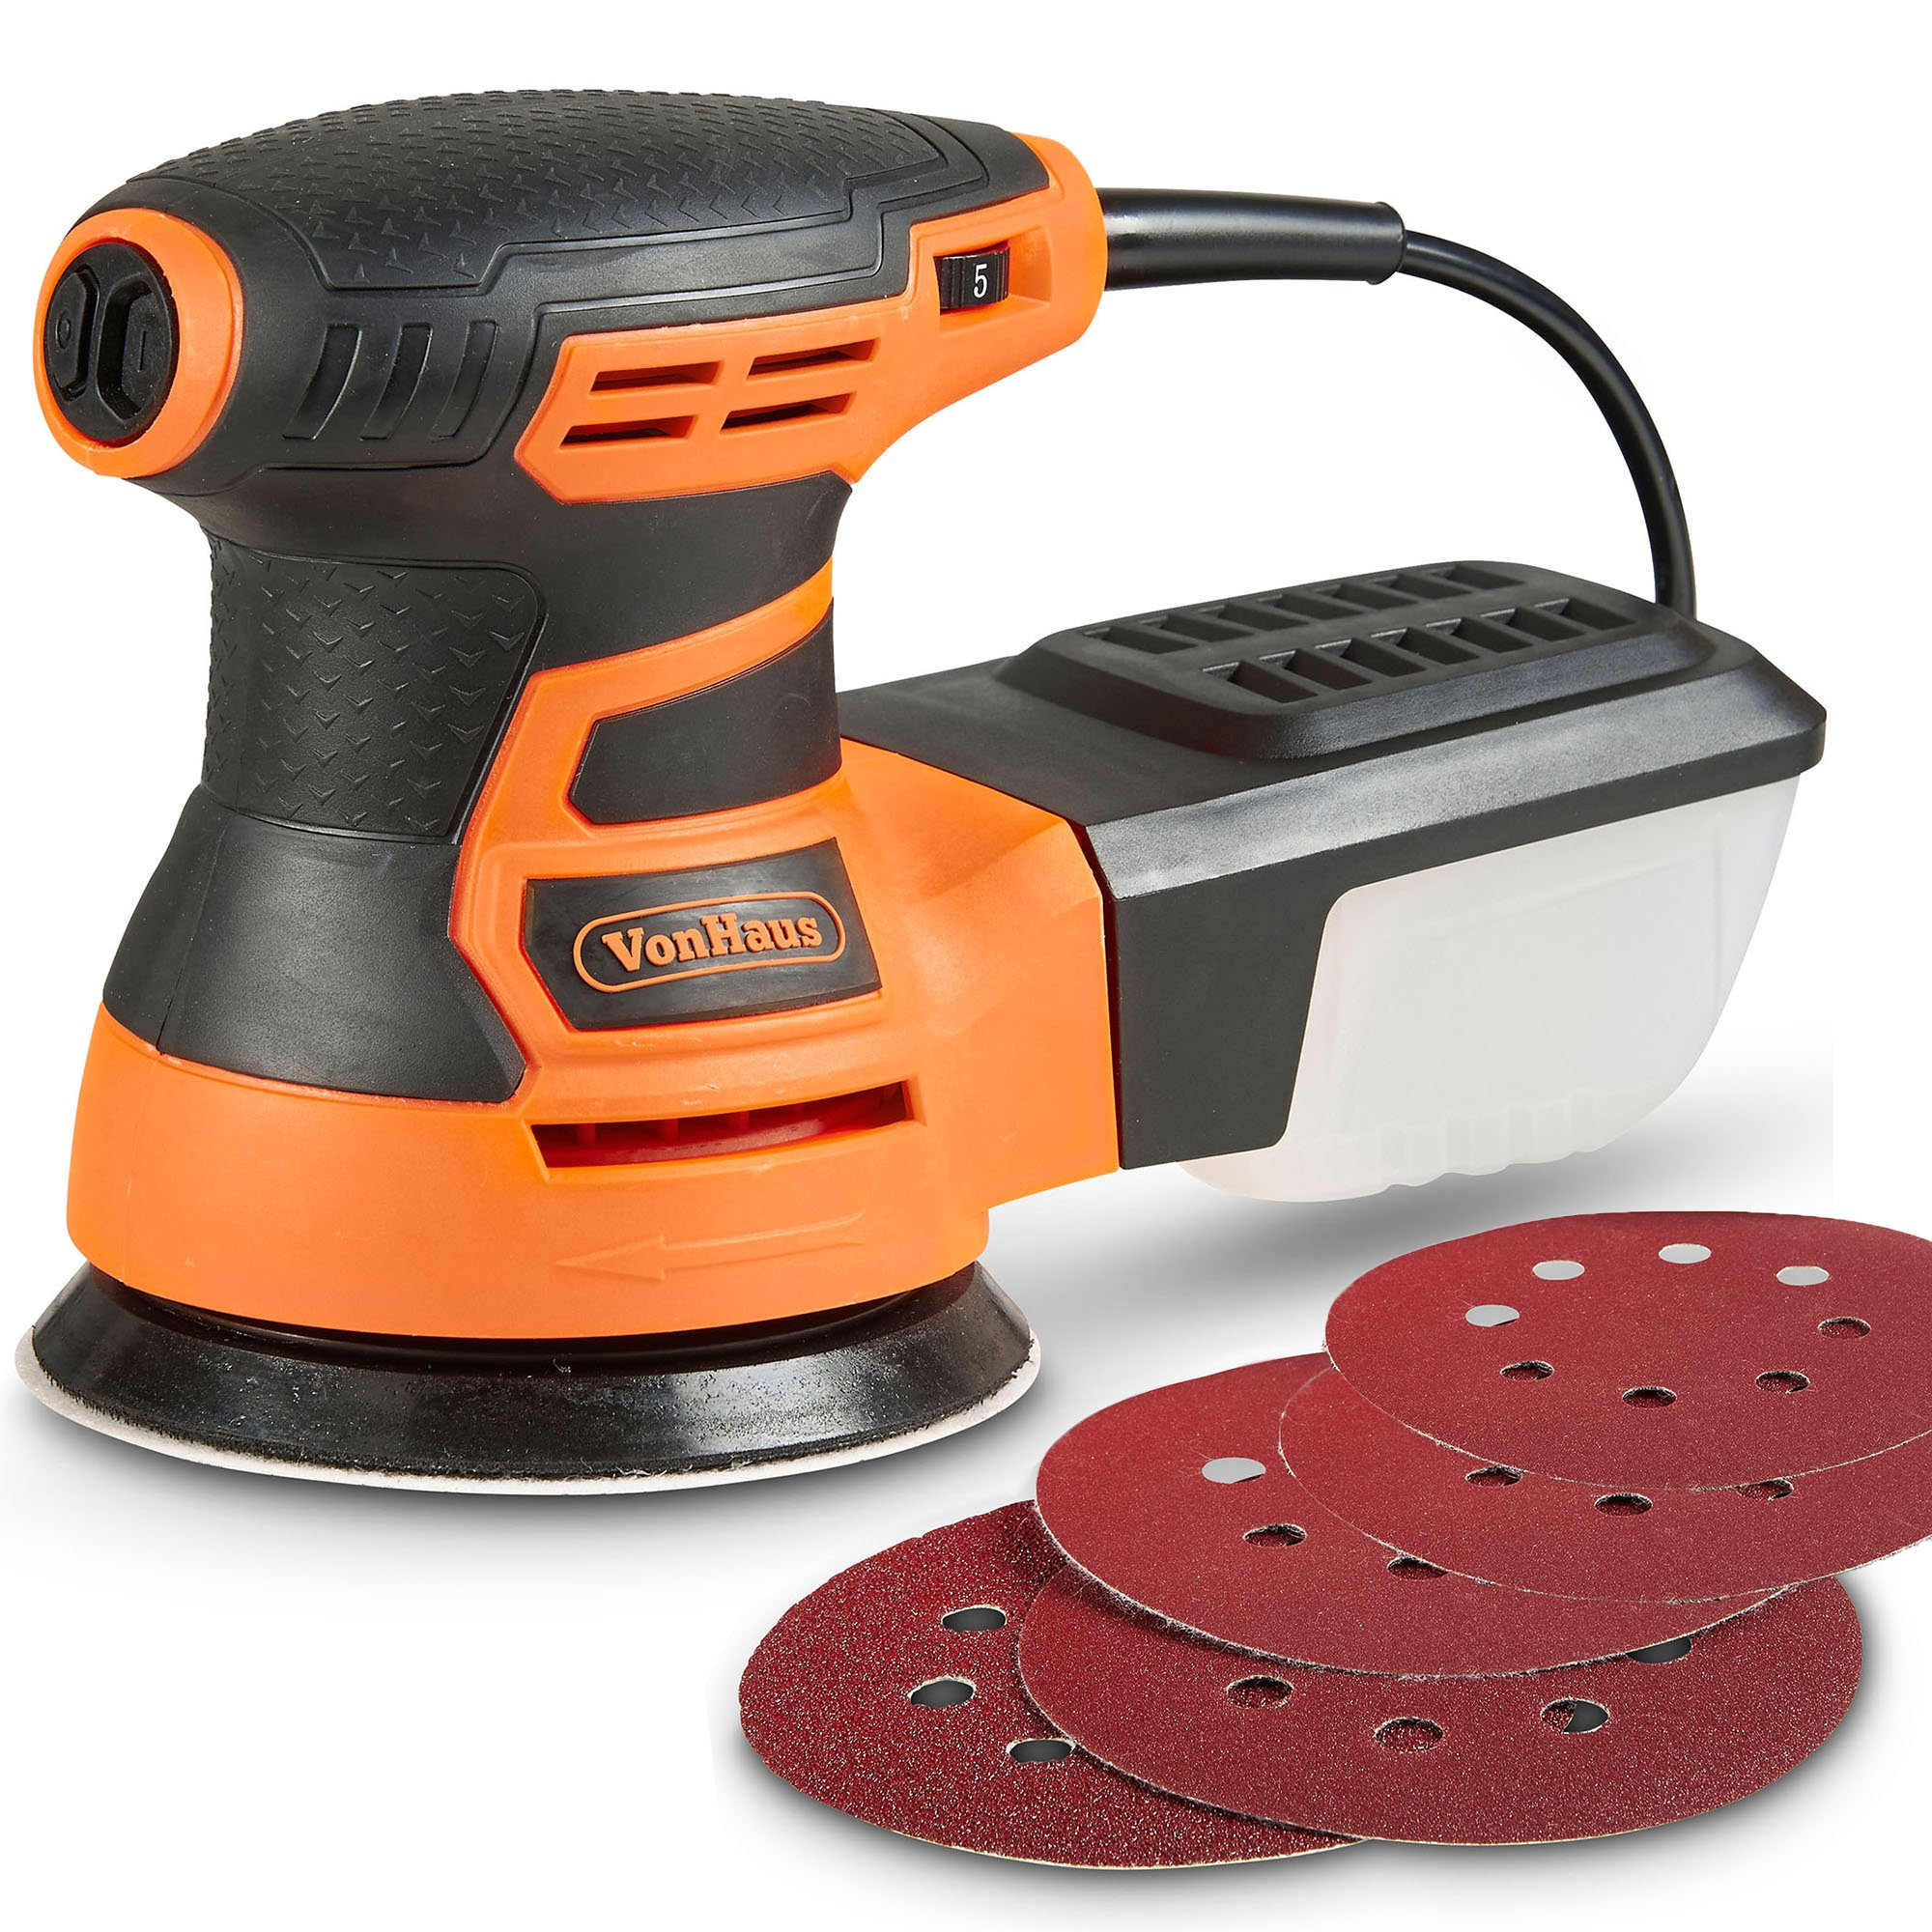 VonHaus Random Orbit Sander with 13000 RPM Variable Speeds and Dust Extraction System - Includes 5 Random Orbital Sander Pads